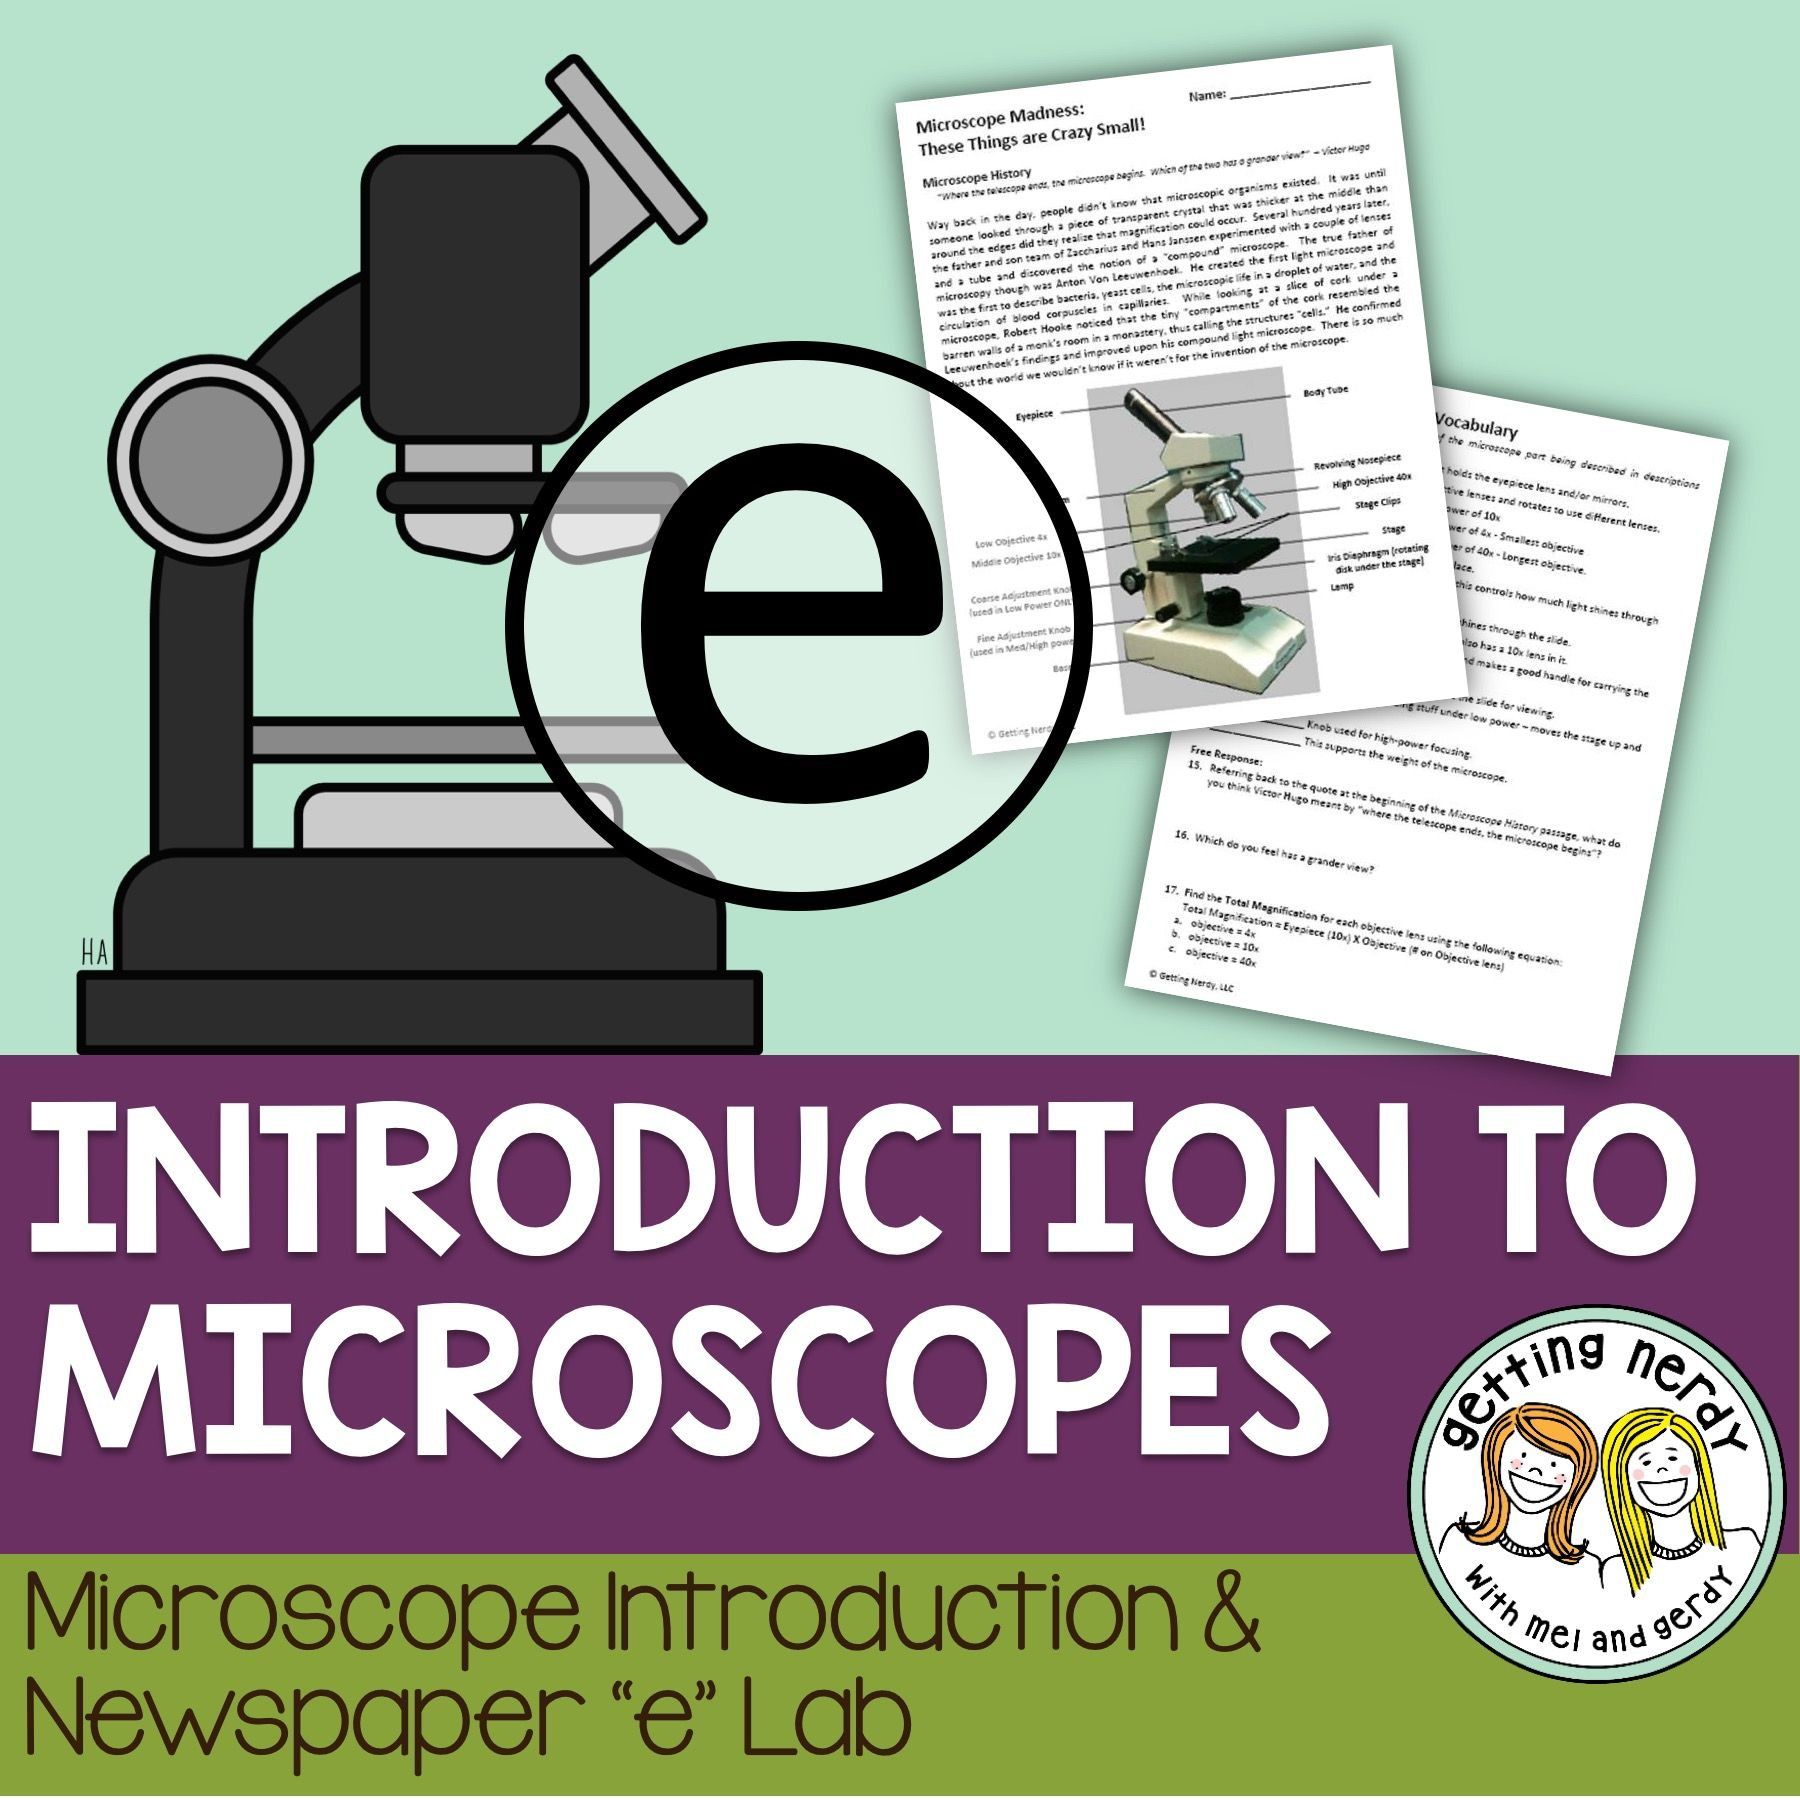 worksheet A View Of The Cell Worksheet Answers microscope lab free how do you view specimens under a life science